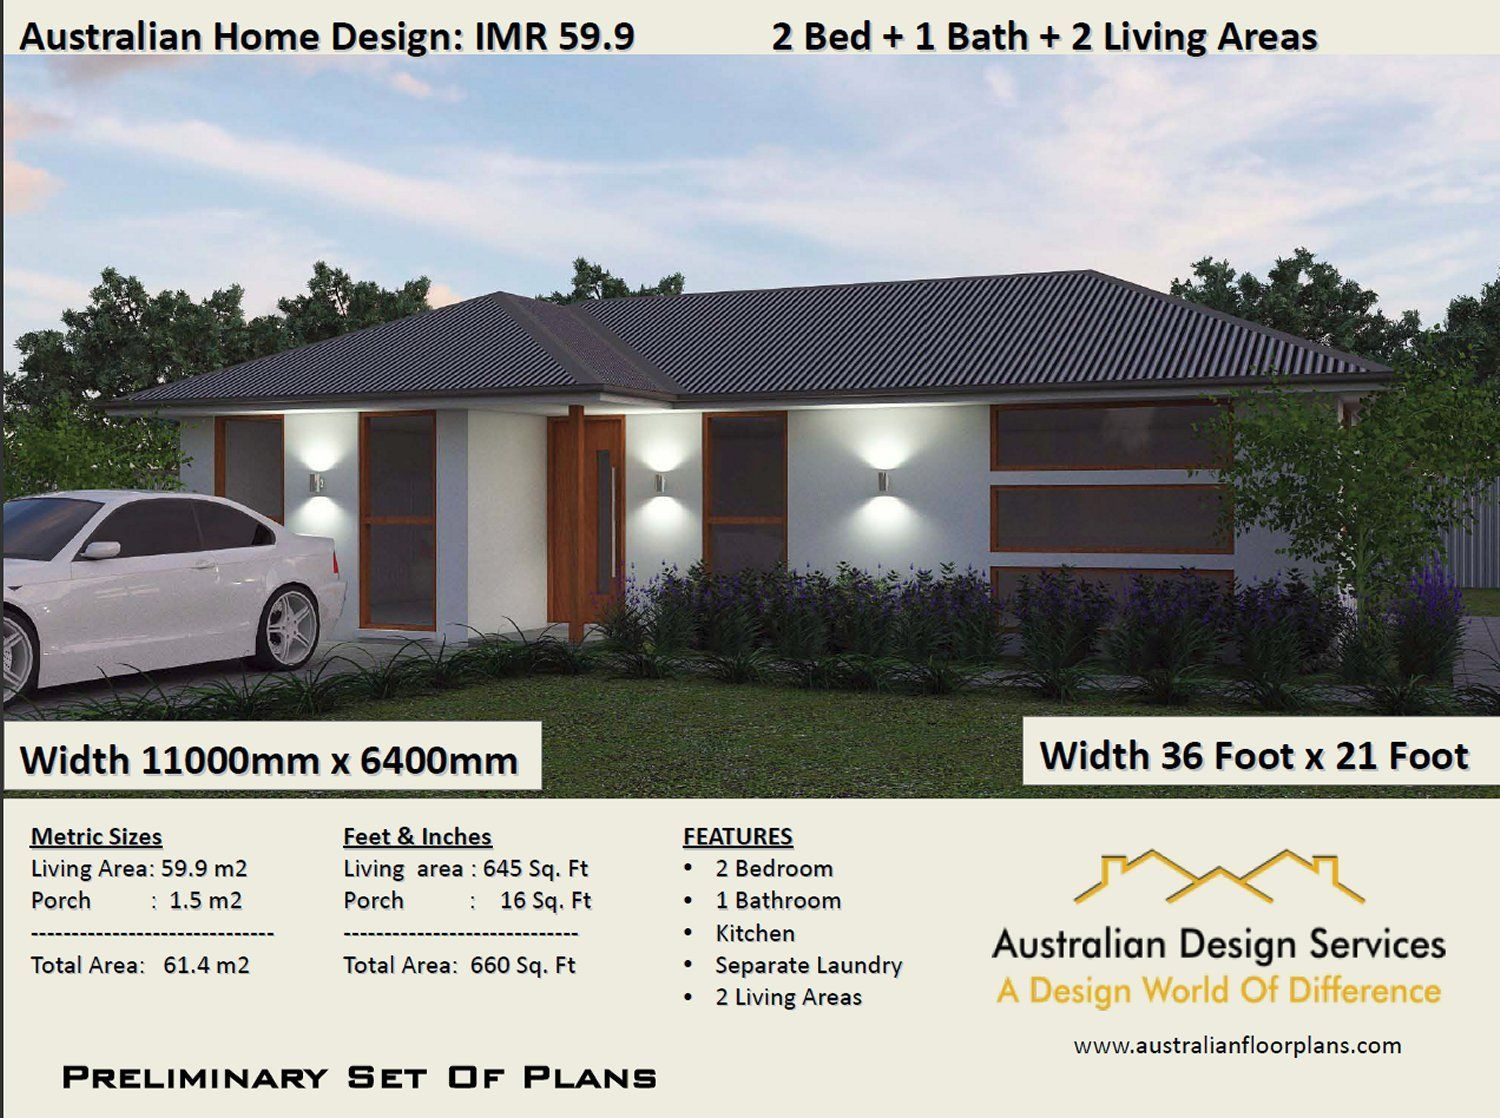 2 Bed House Plan 660 Sq Foot 61 4 M2 2 Bedroom Small Home 2 Bedroom Floor Plan 2 Bed Granny Flat Small House Plans Australia House Plans Australia Free House Plans Small House Plans